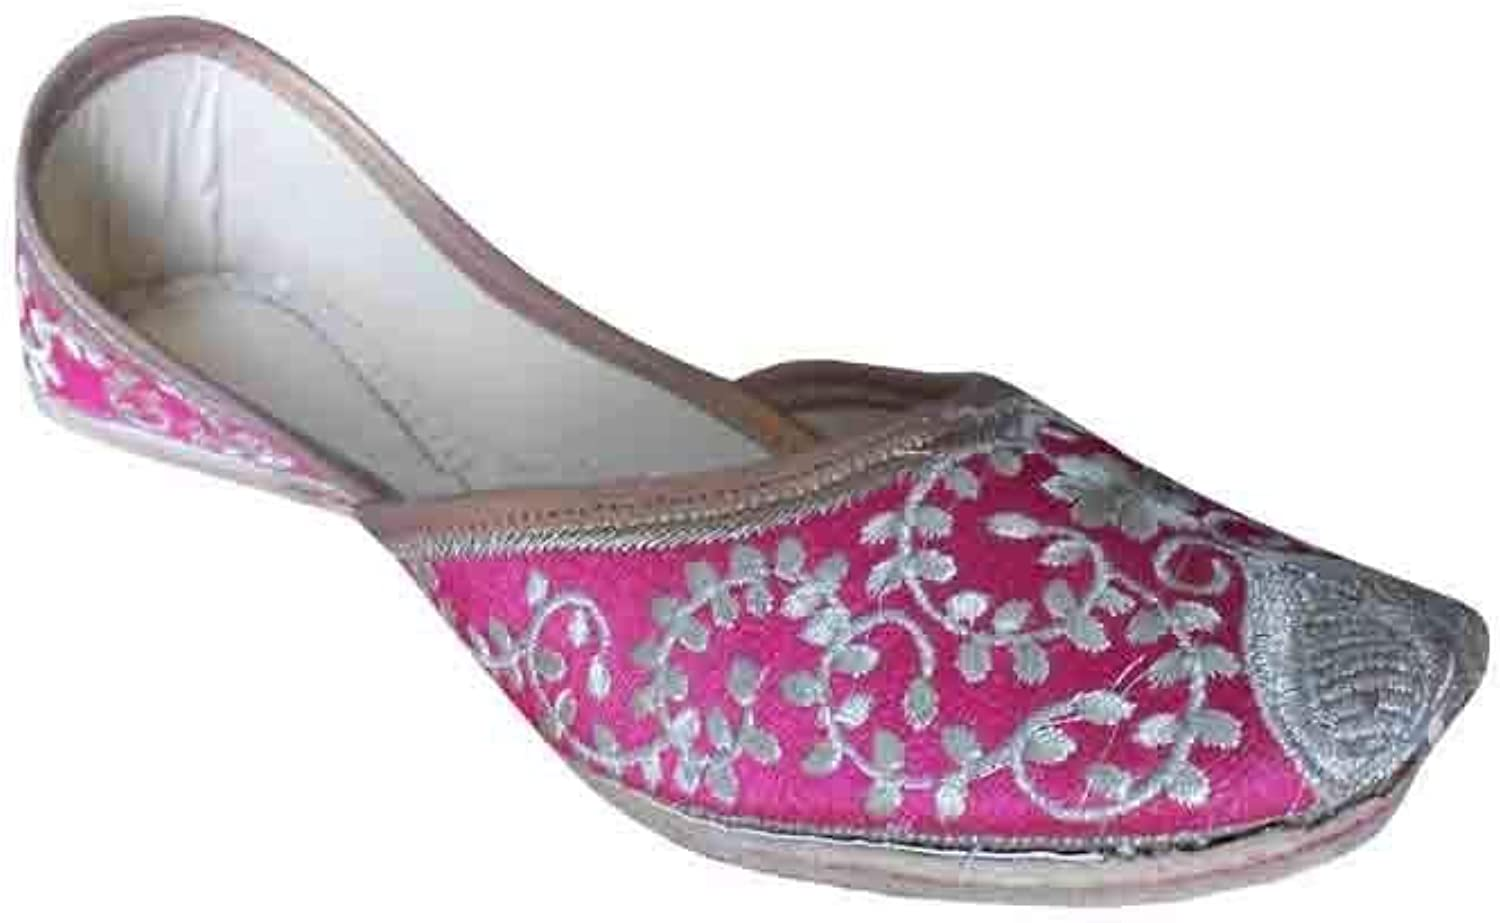 Kalra Creations Mojari Leather Women shoes Indian Handmade Ethnic Juti Flipflops Flat Pink